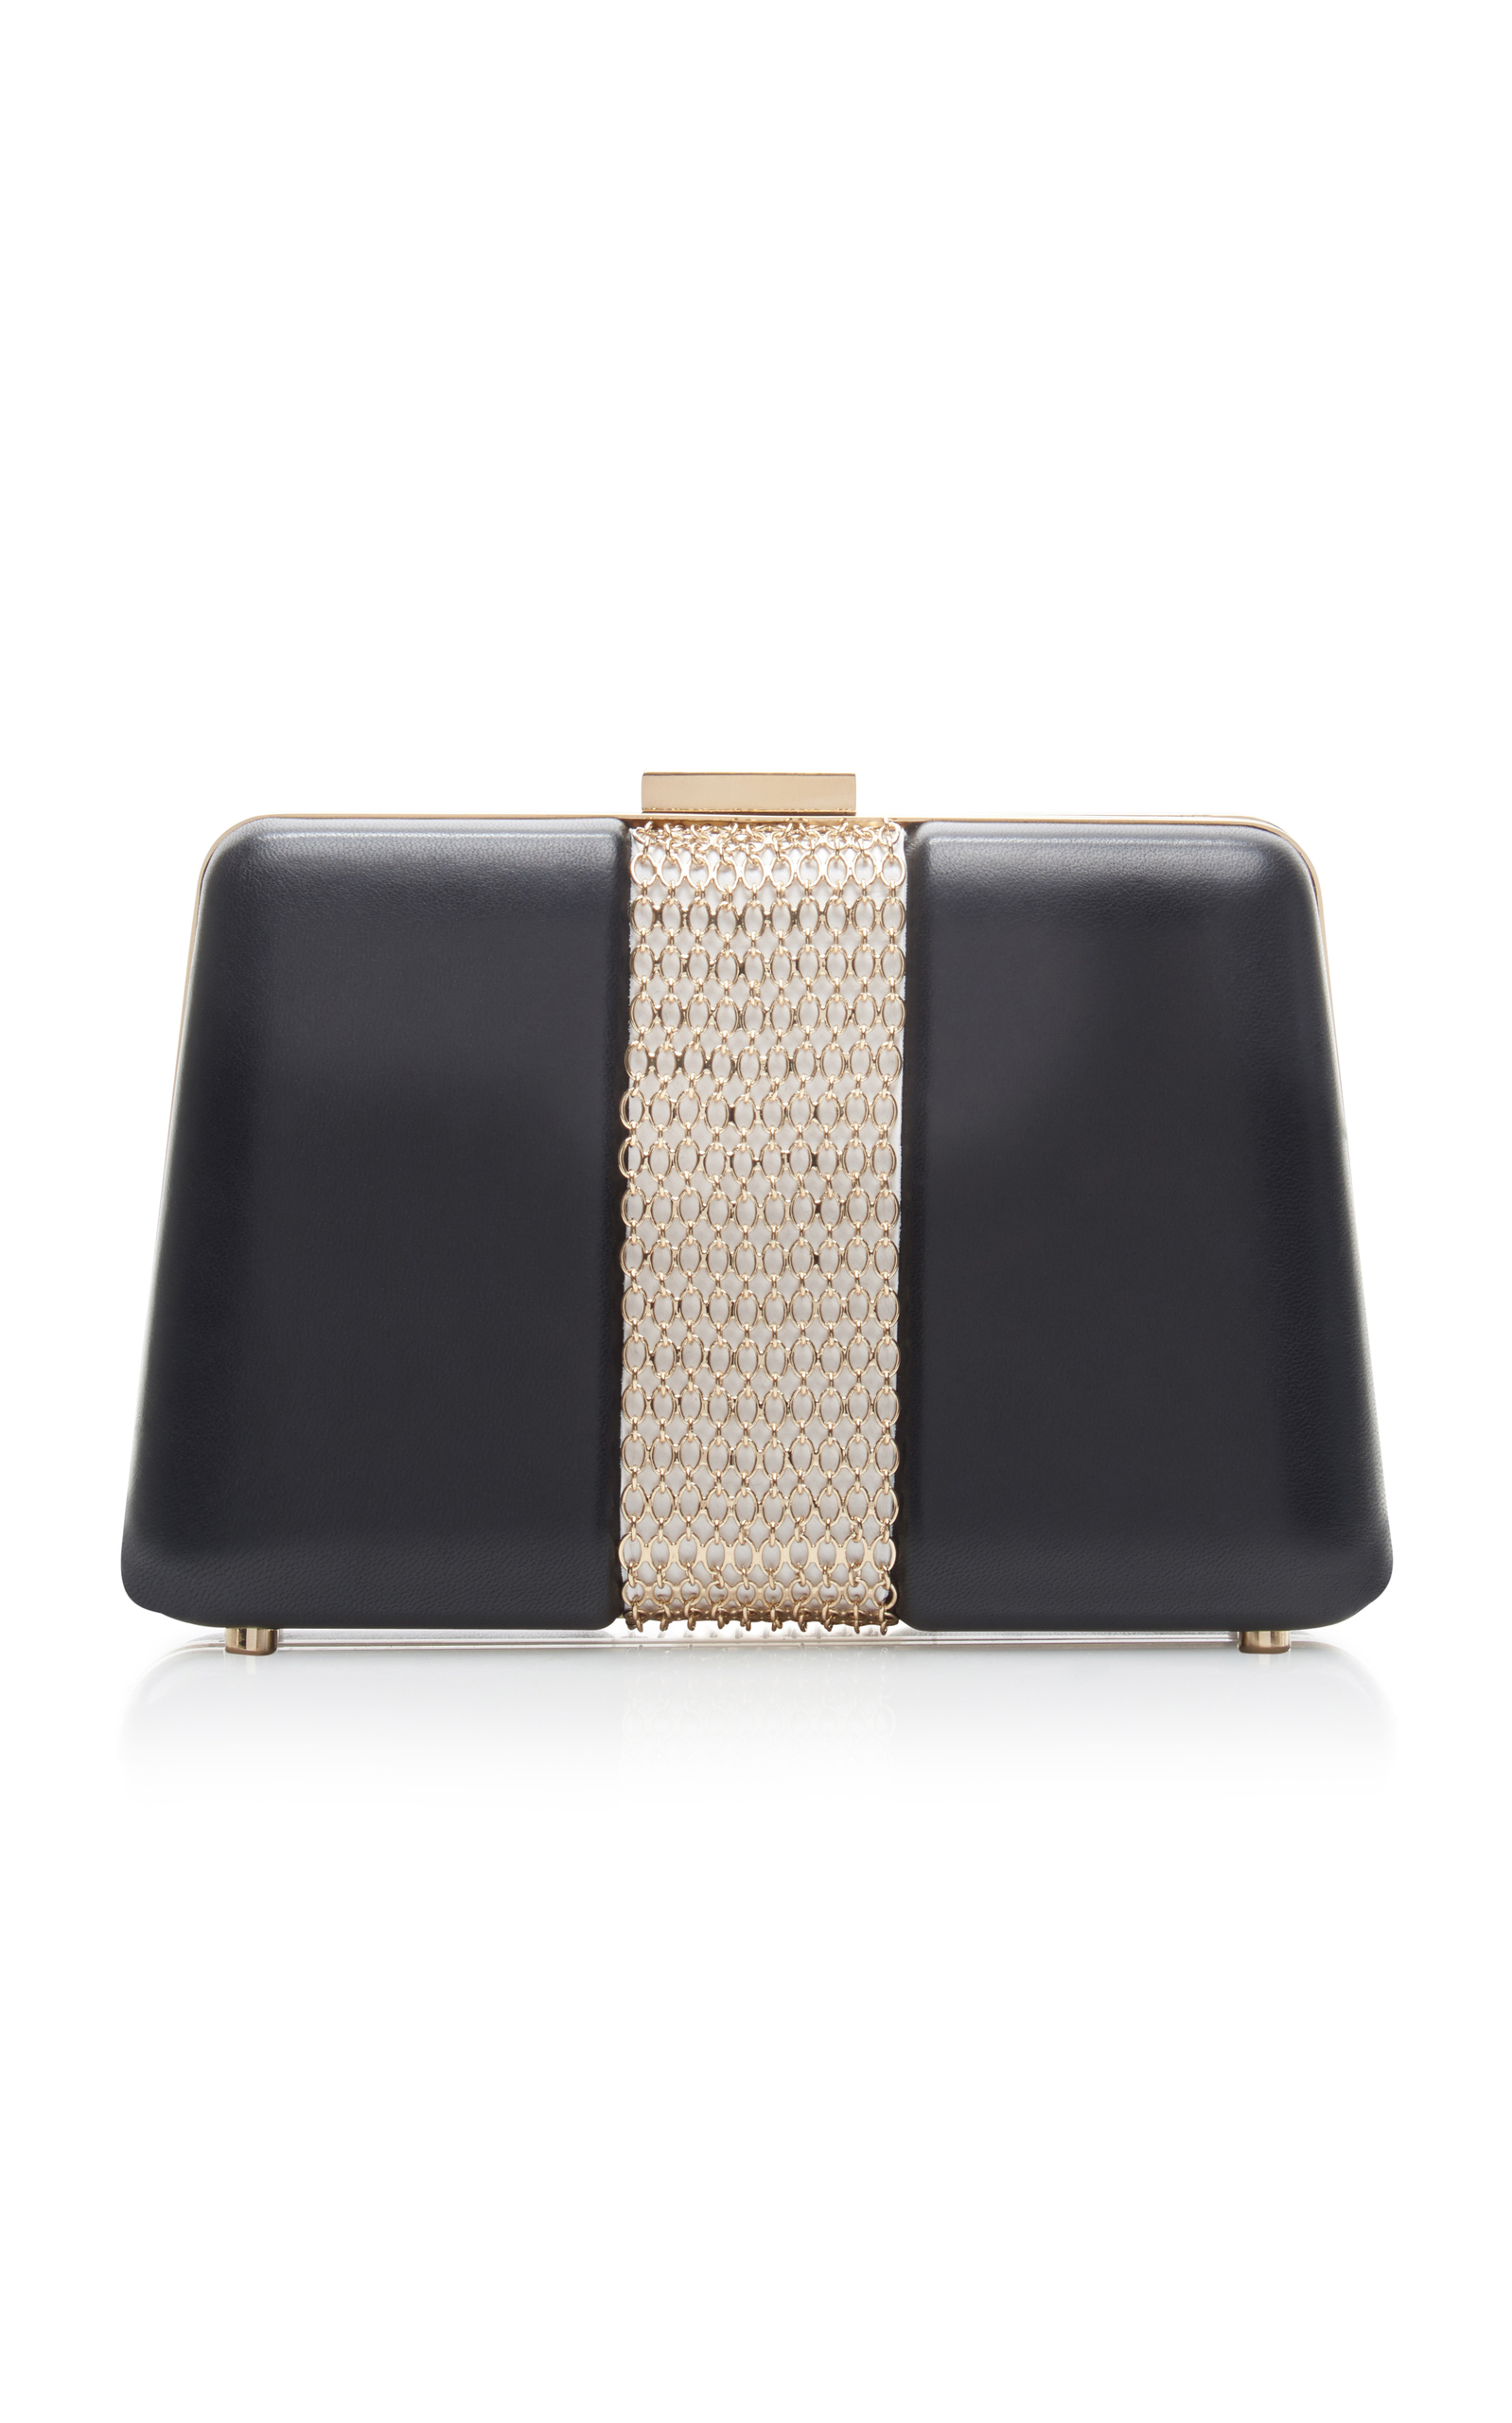 Lanvin Chain Embellished Leather Box Clutch In Black